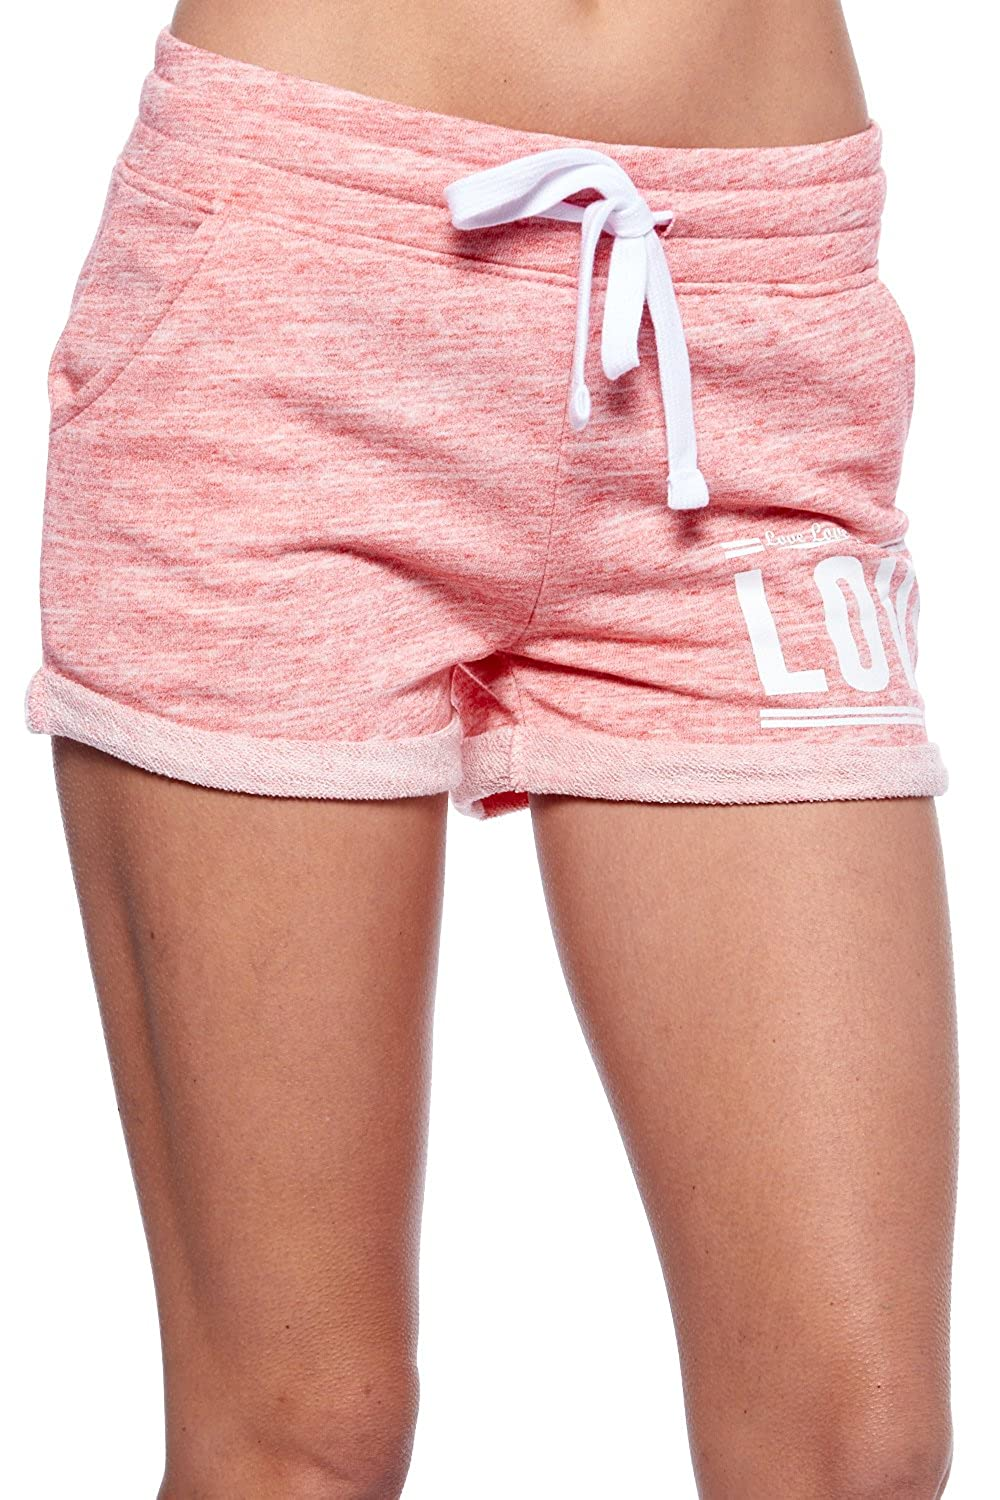 """Womens """"Love"""" Print Workout Cuffed Sweat French Terry Shorts H254"""